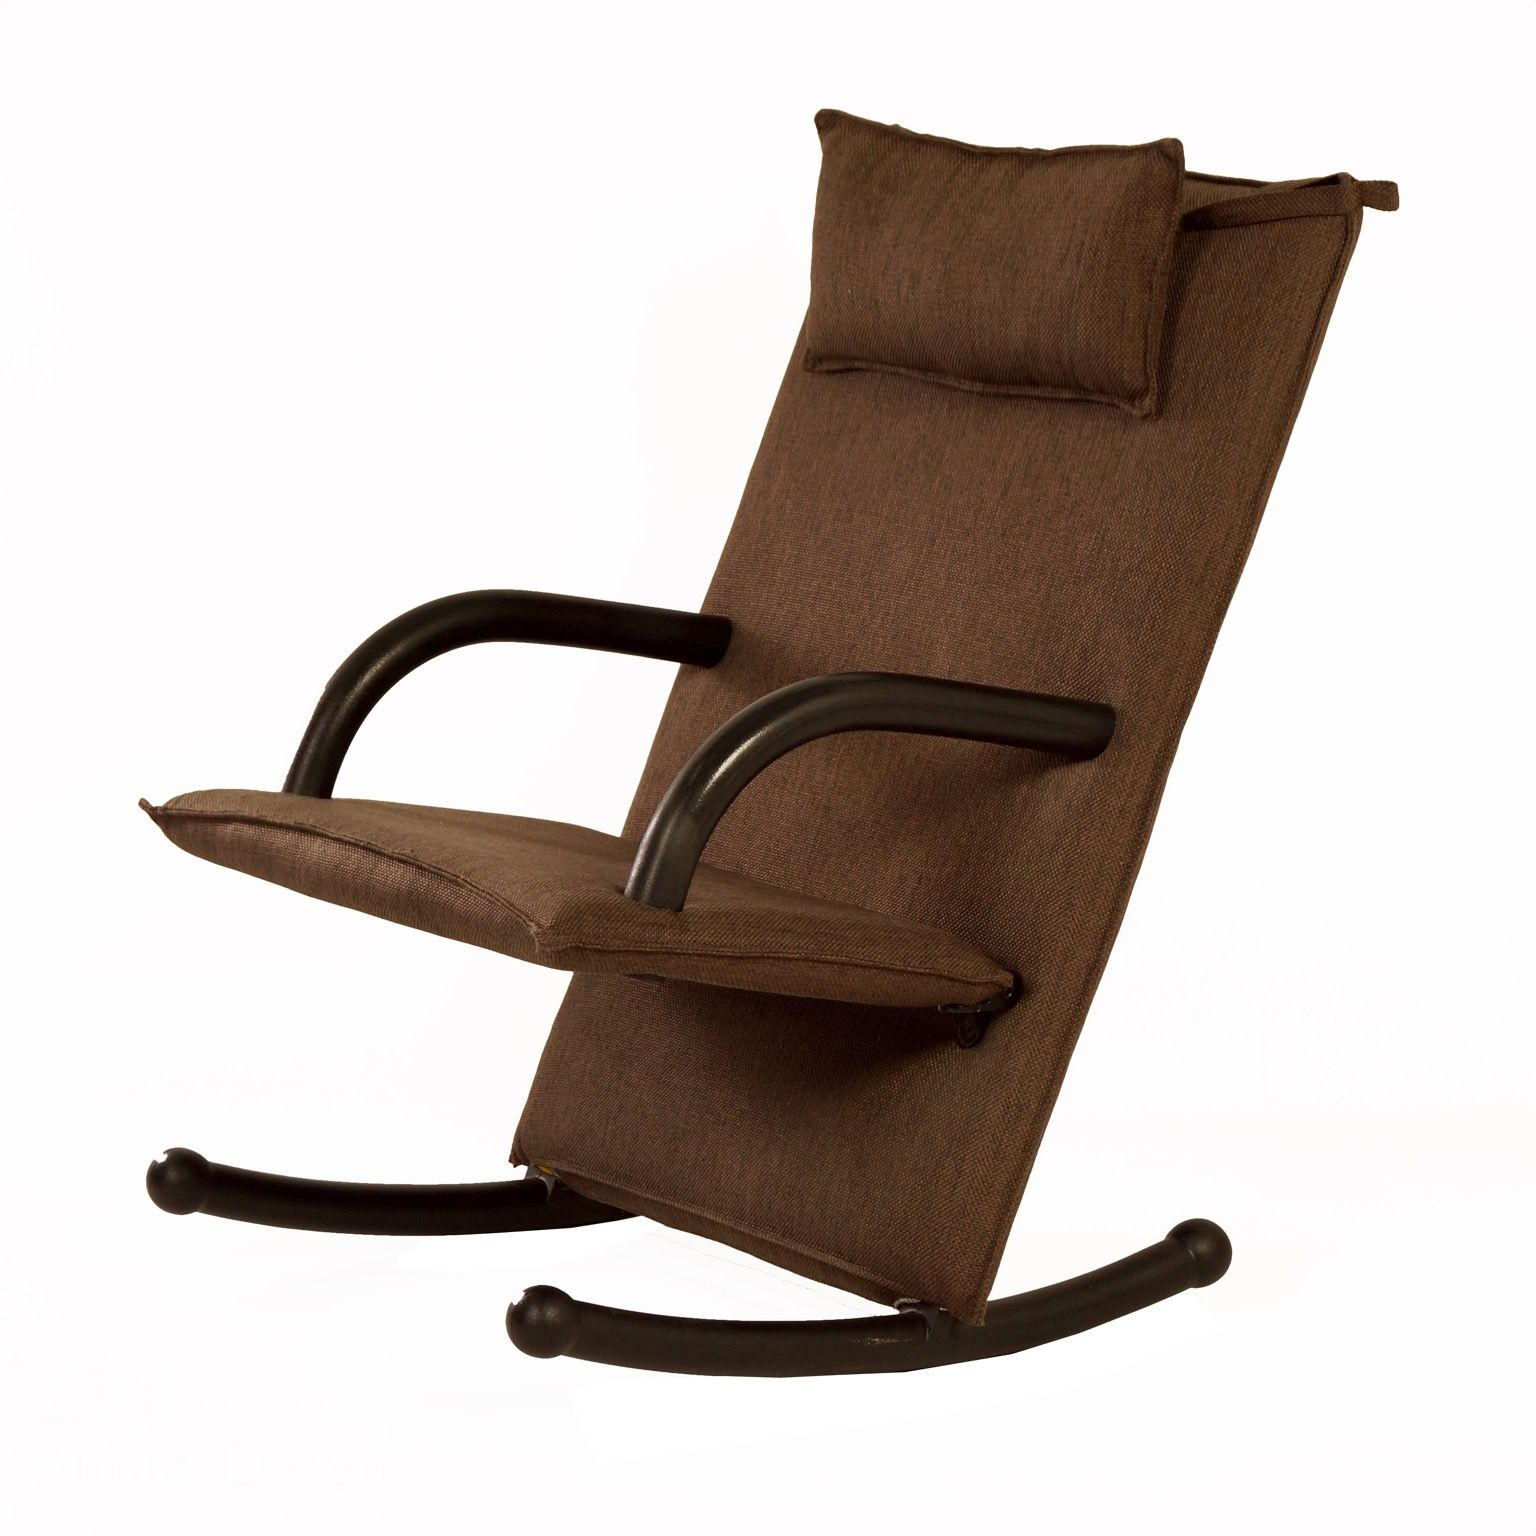 T Line Rocking Chair Designed By Burkhard Vogtherr For Arflex Italy 1980s